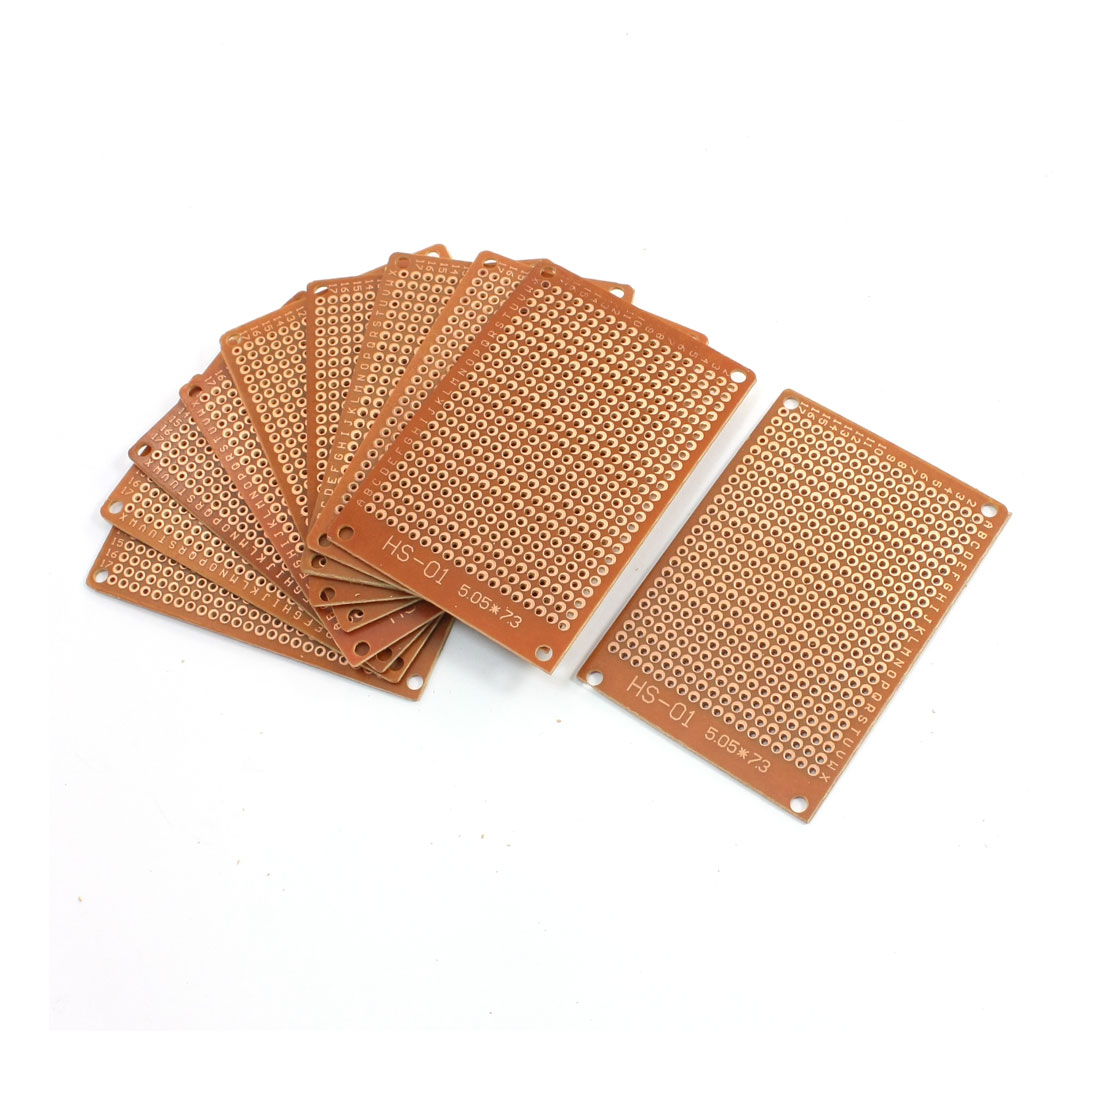 2.54mm Pitch PCB Board Prototype Breadboard Single Side 50mm x 73mm Brown 10Pcs